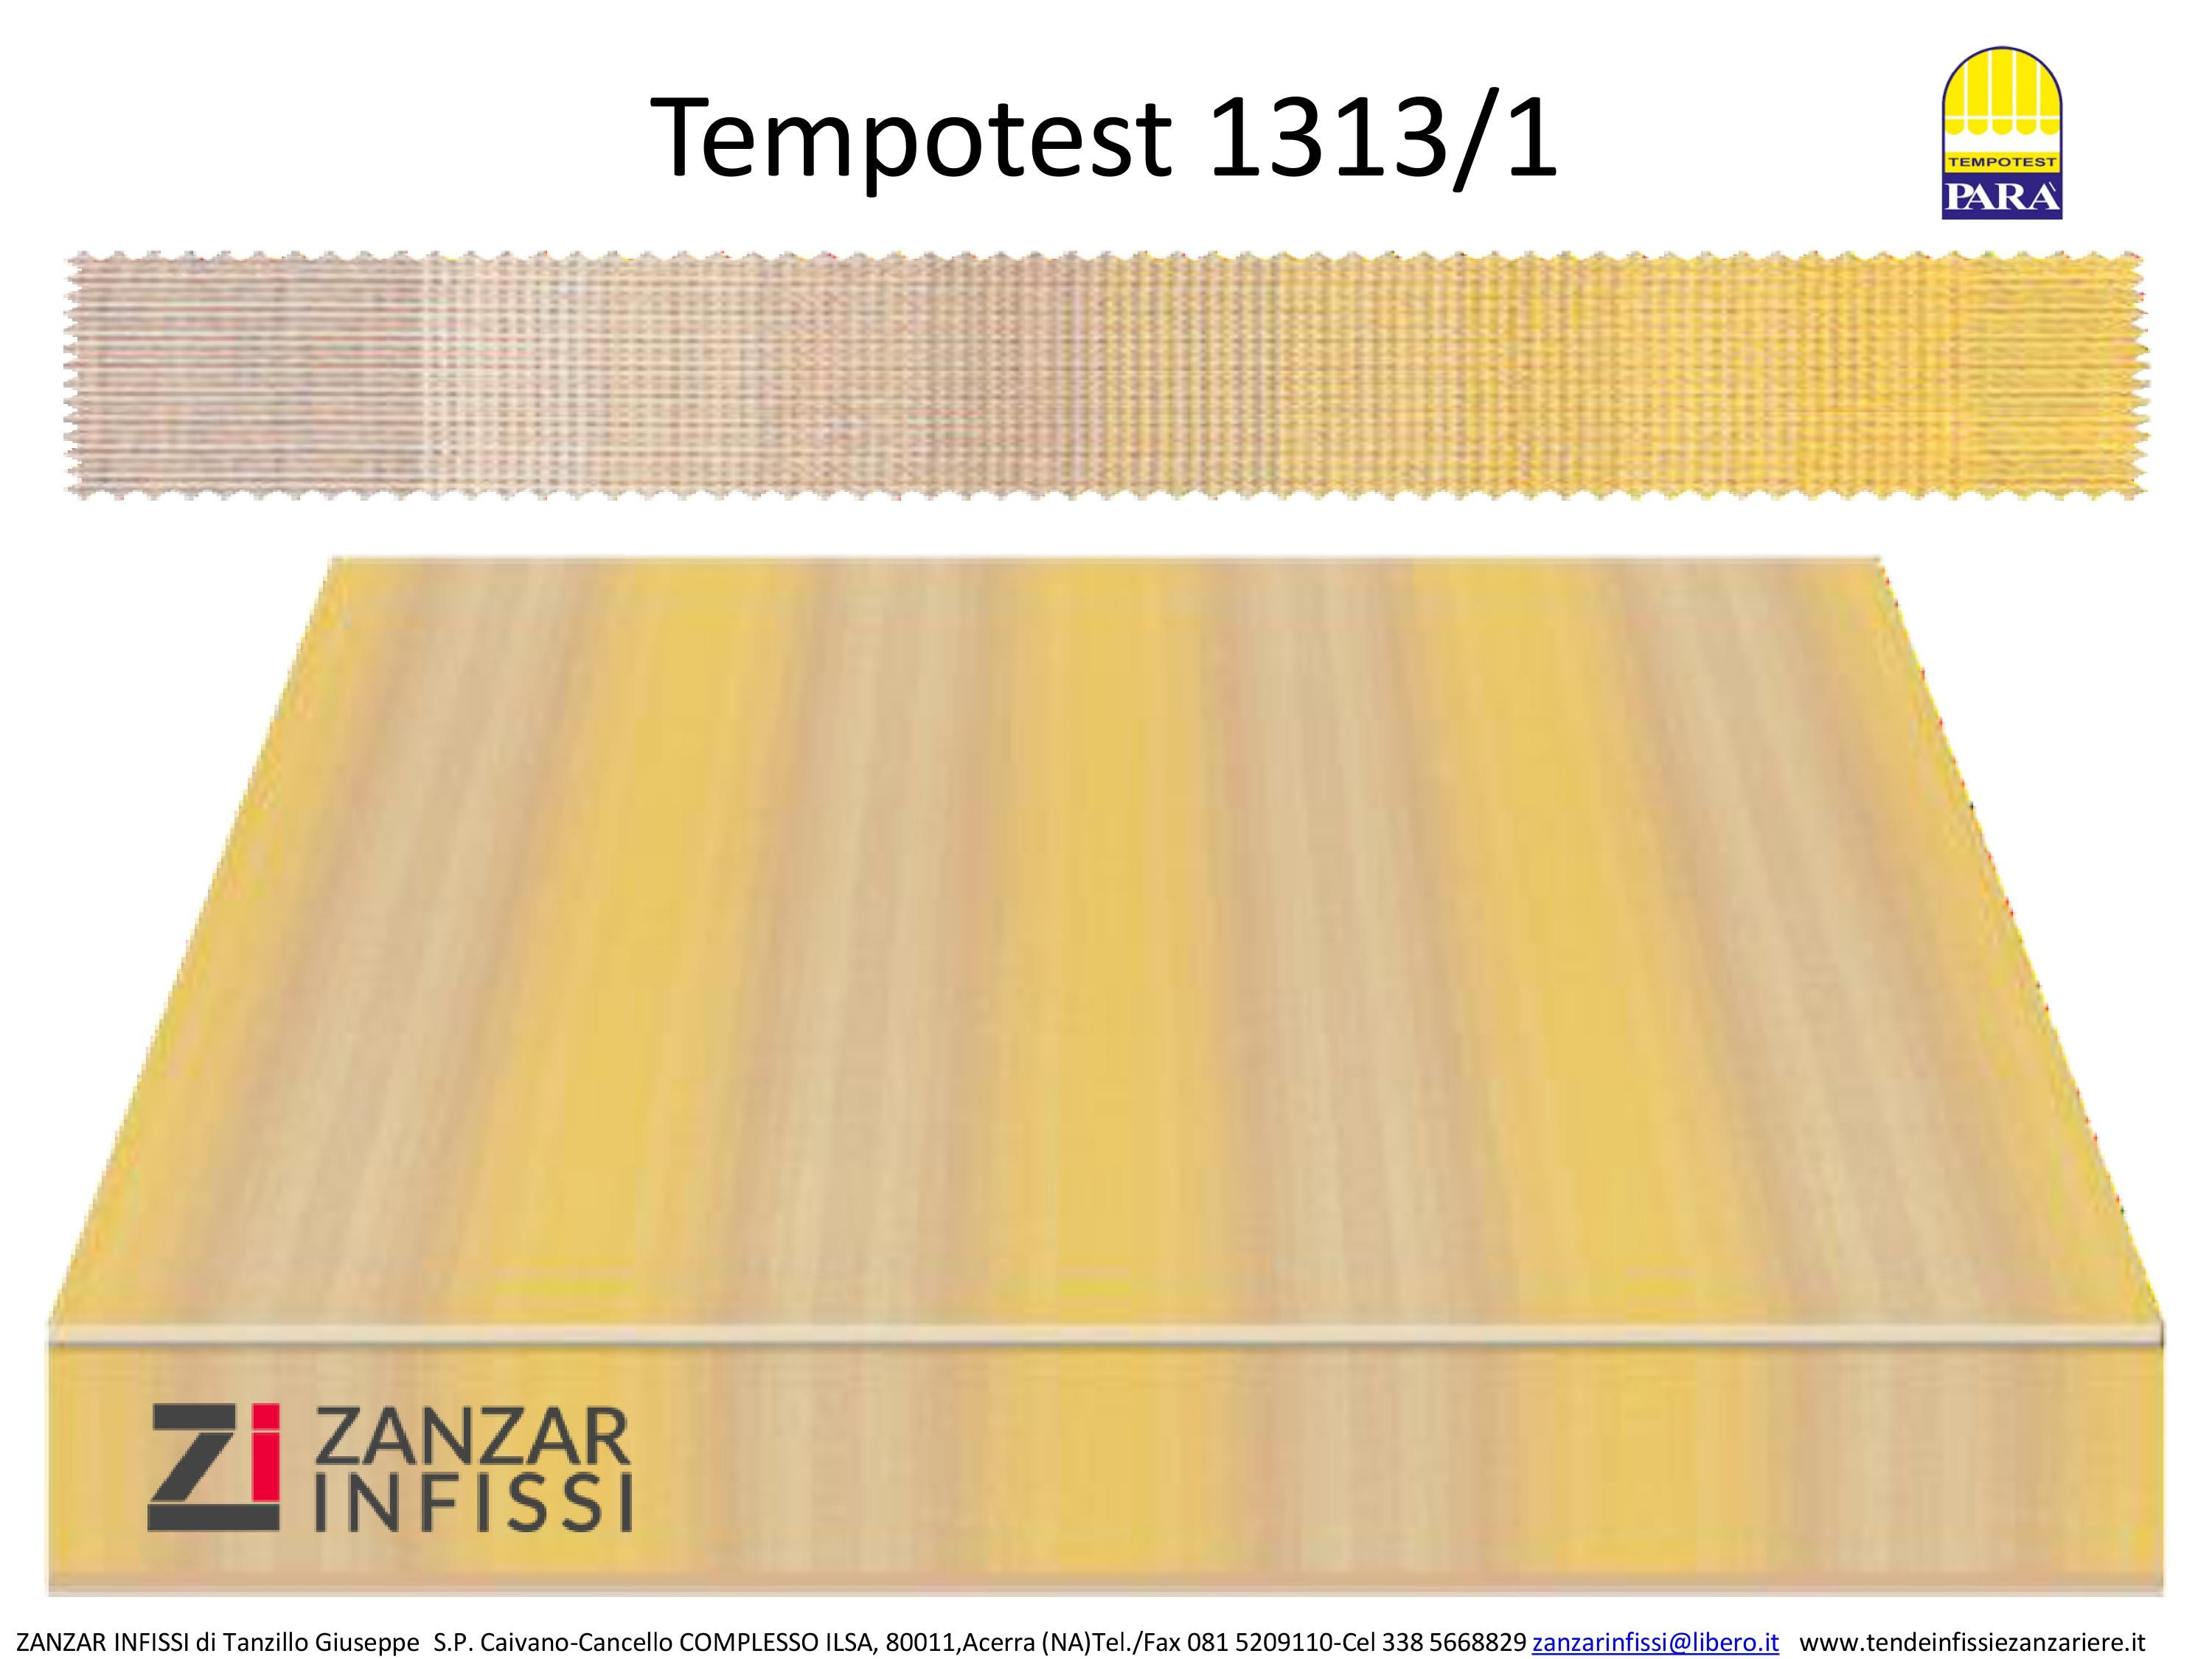 Tempotest 1313/1